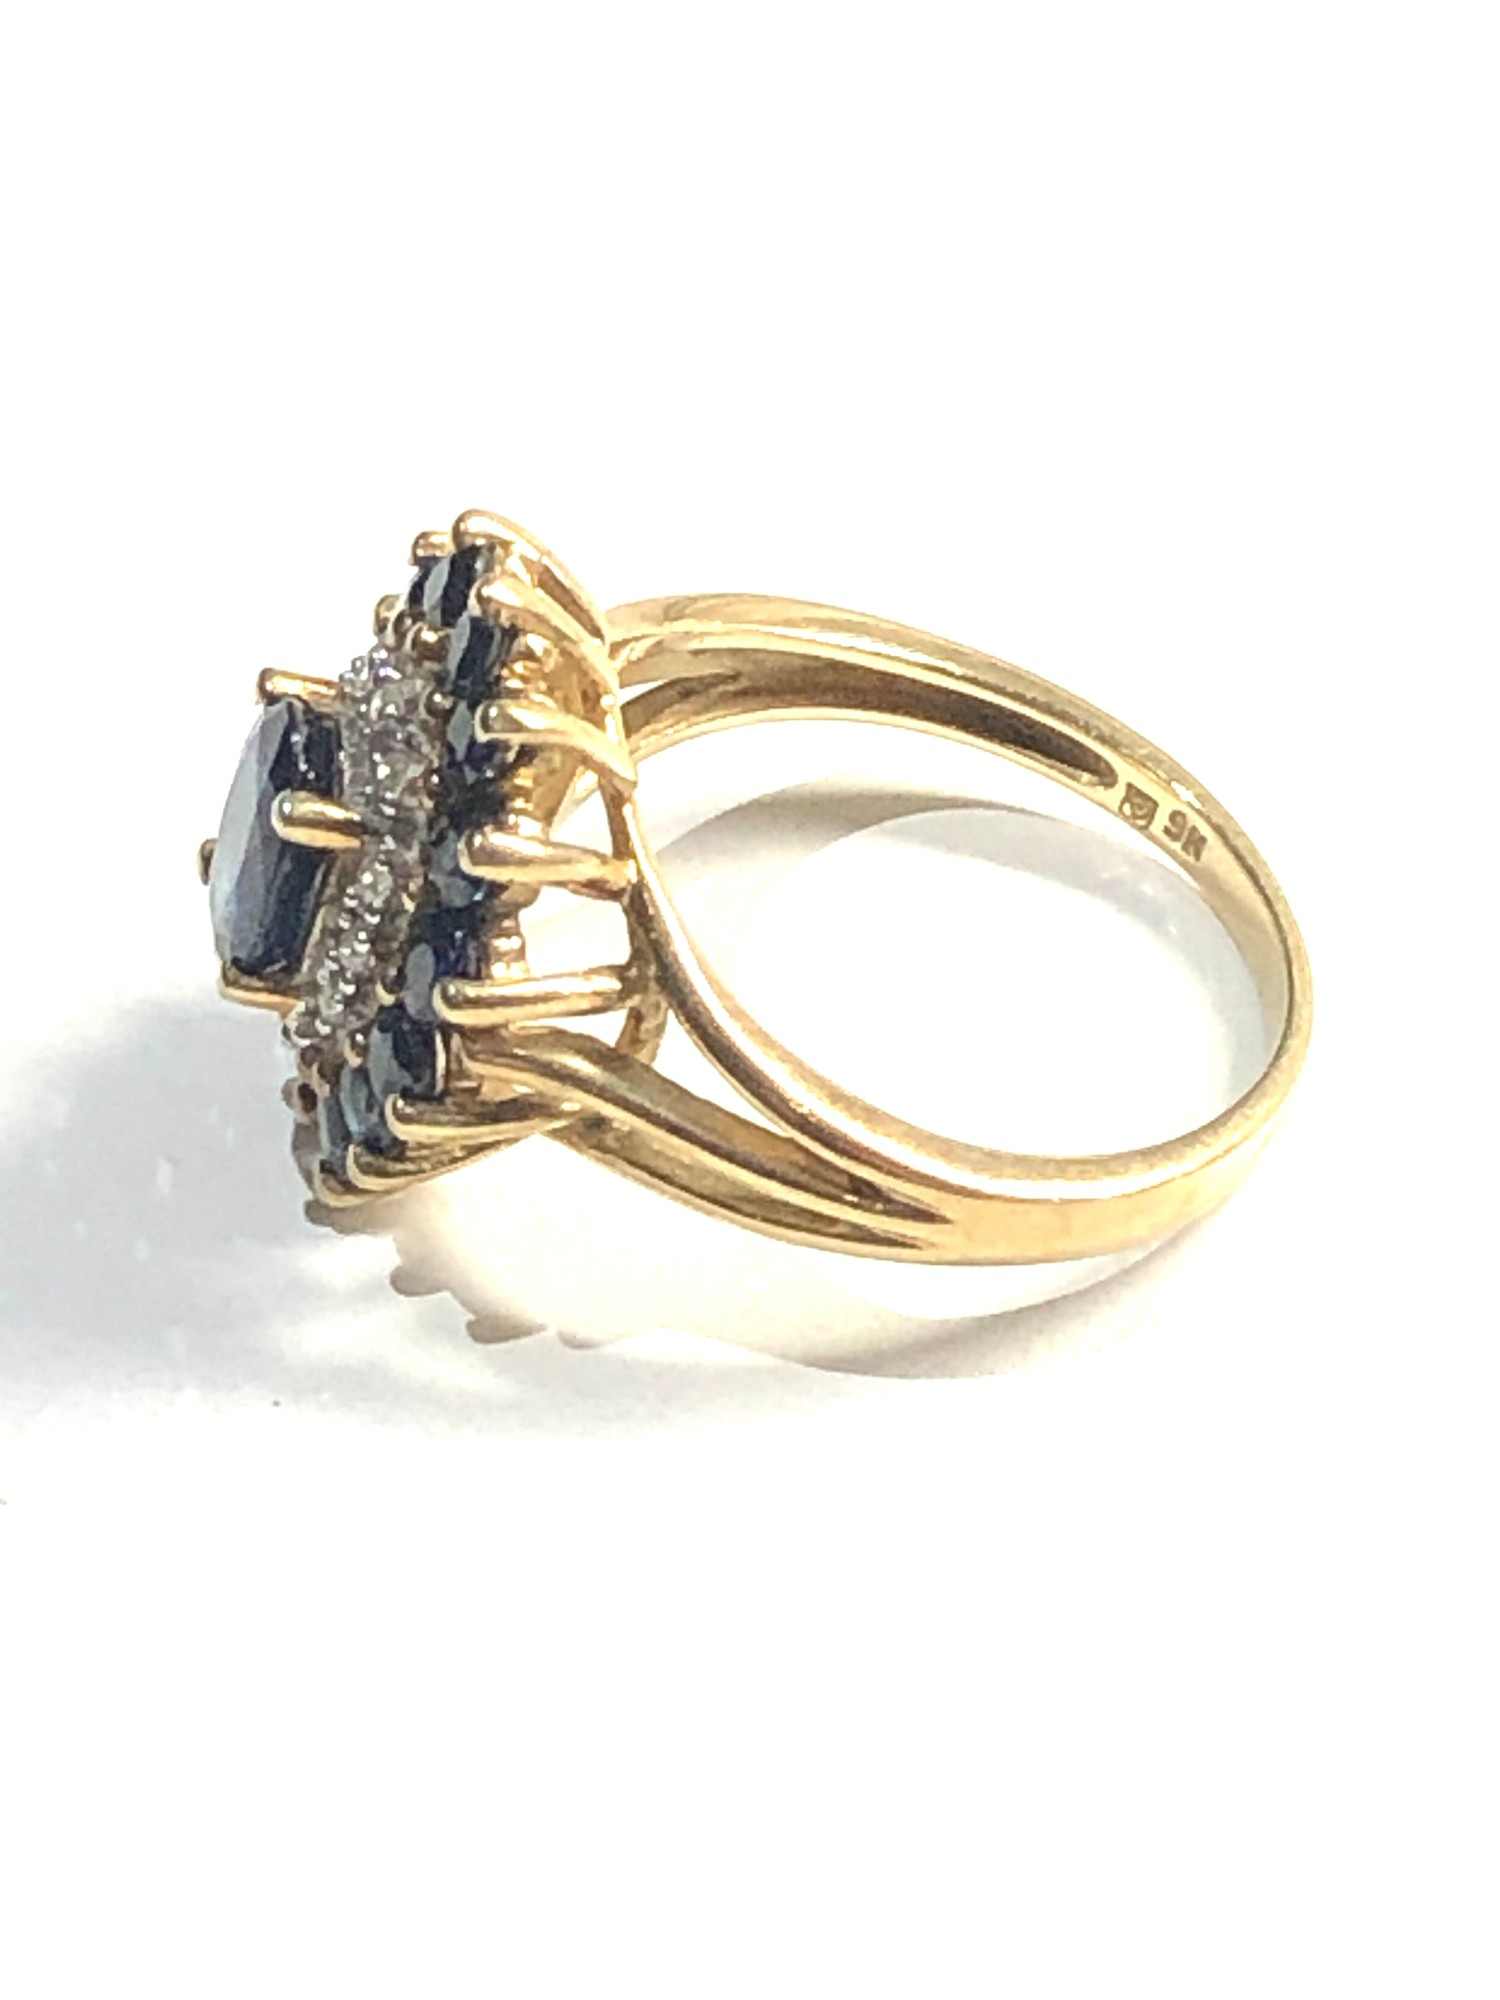 9ct sapphire & diamond cluster ring 3.9g - Image 2 of 3